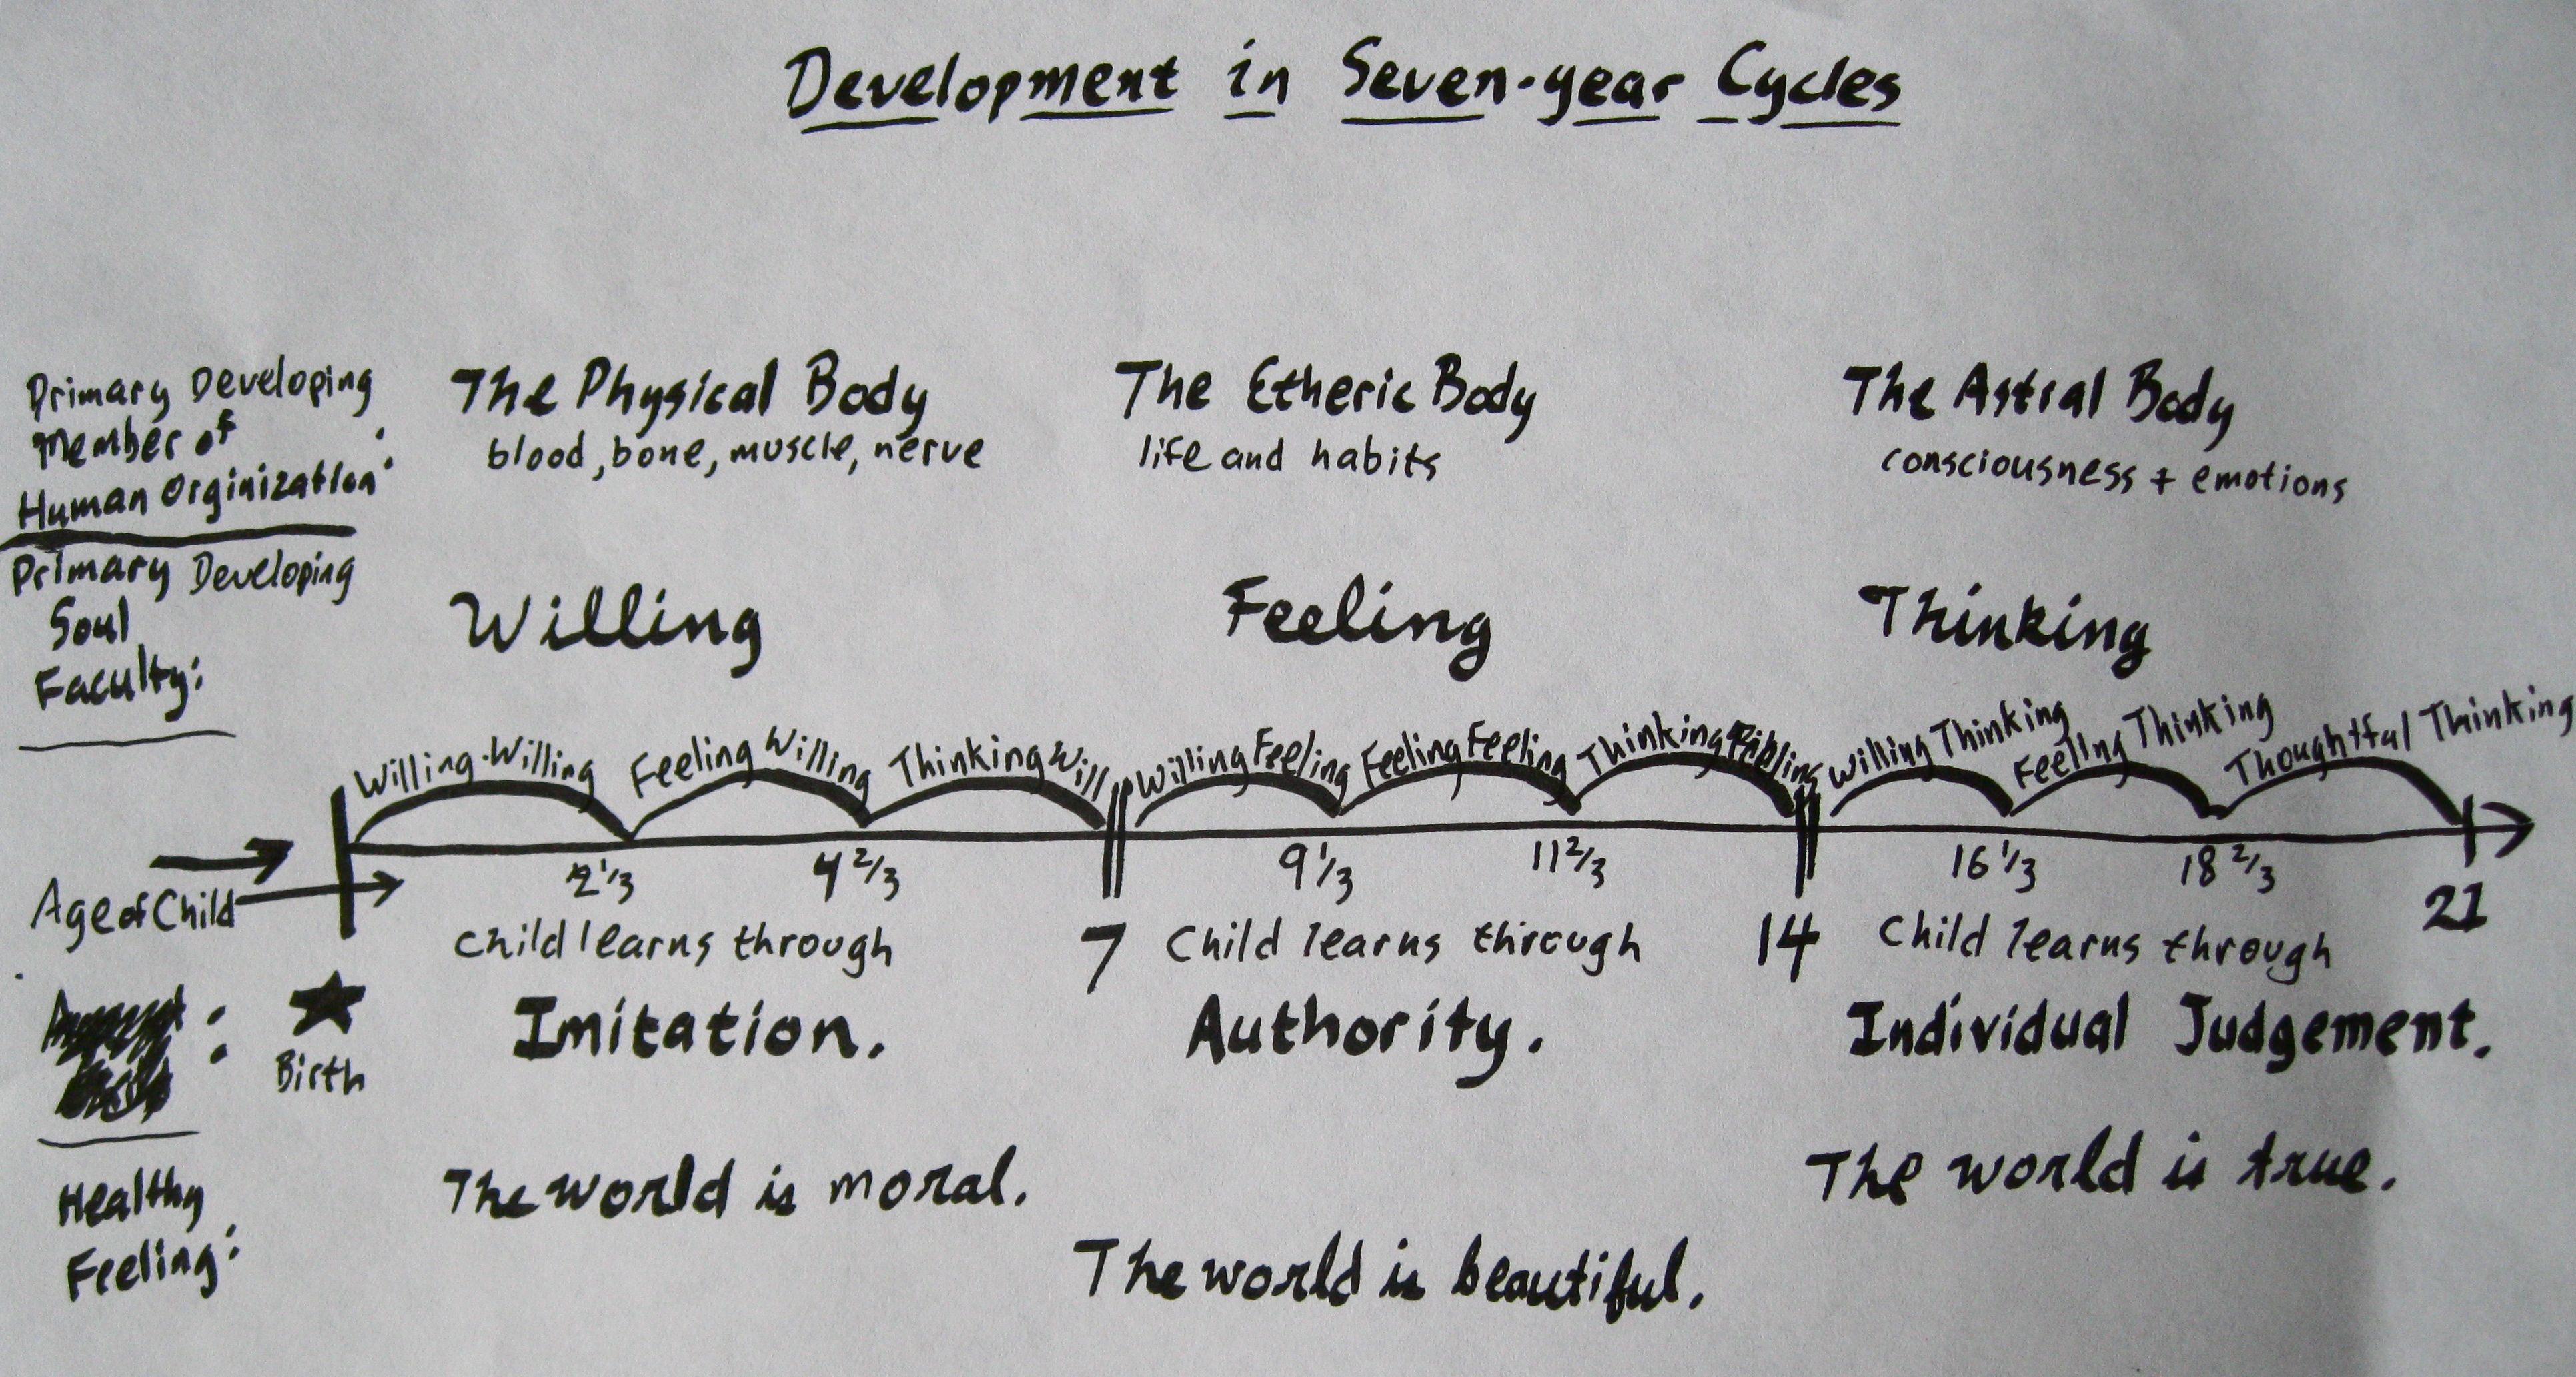 Seven Year Cycles And Subcycles Of Development Waldorf Education Rudolf Steiner Thoughts On Education